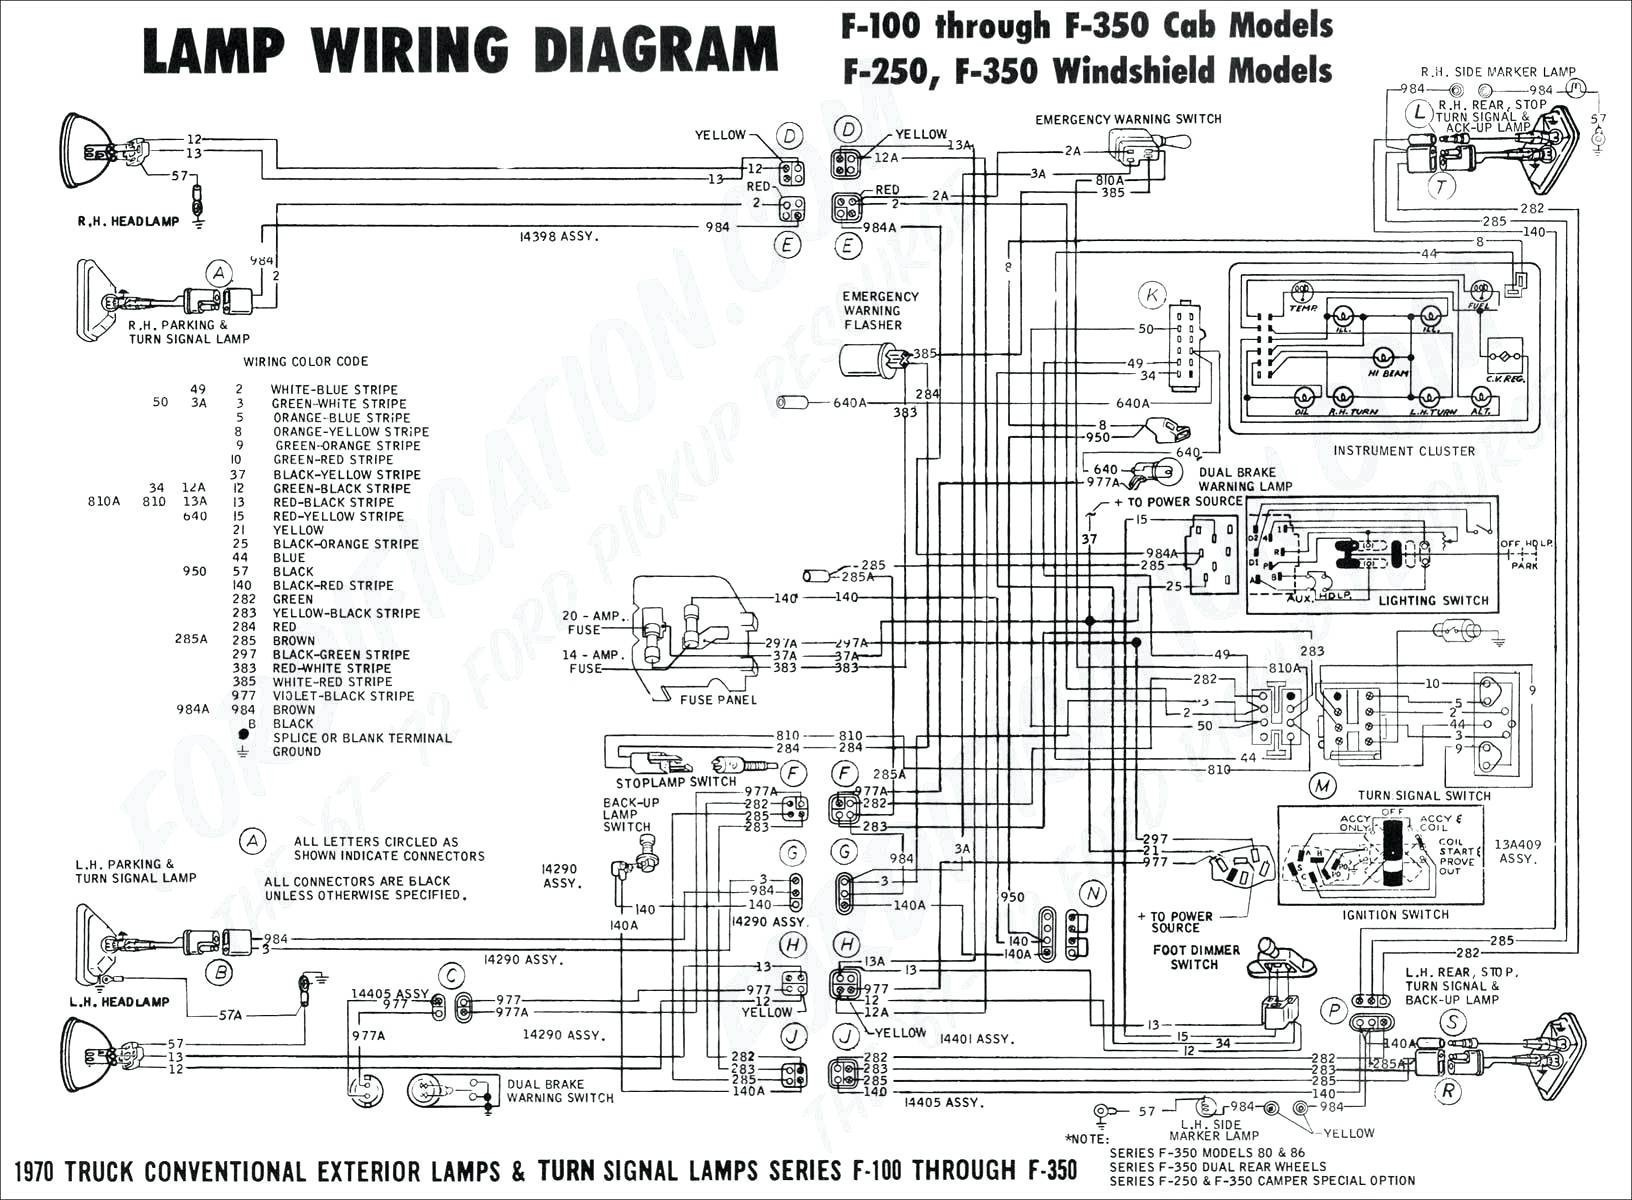 2002 ford Focus Se Engine Diagram 2002 ford F 350 Wiring Diagram Data Wiring Diagrams • Of 2002 ford Focus Se Engine Diagram 2002 ford F 350 Wiring Diagram Data Wiring Diagrams •